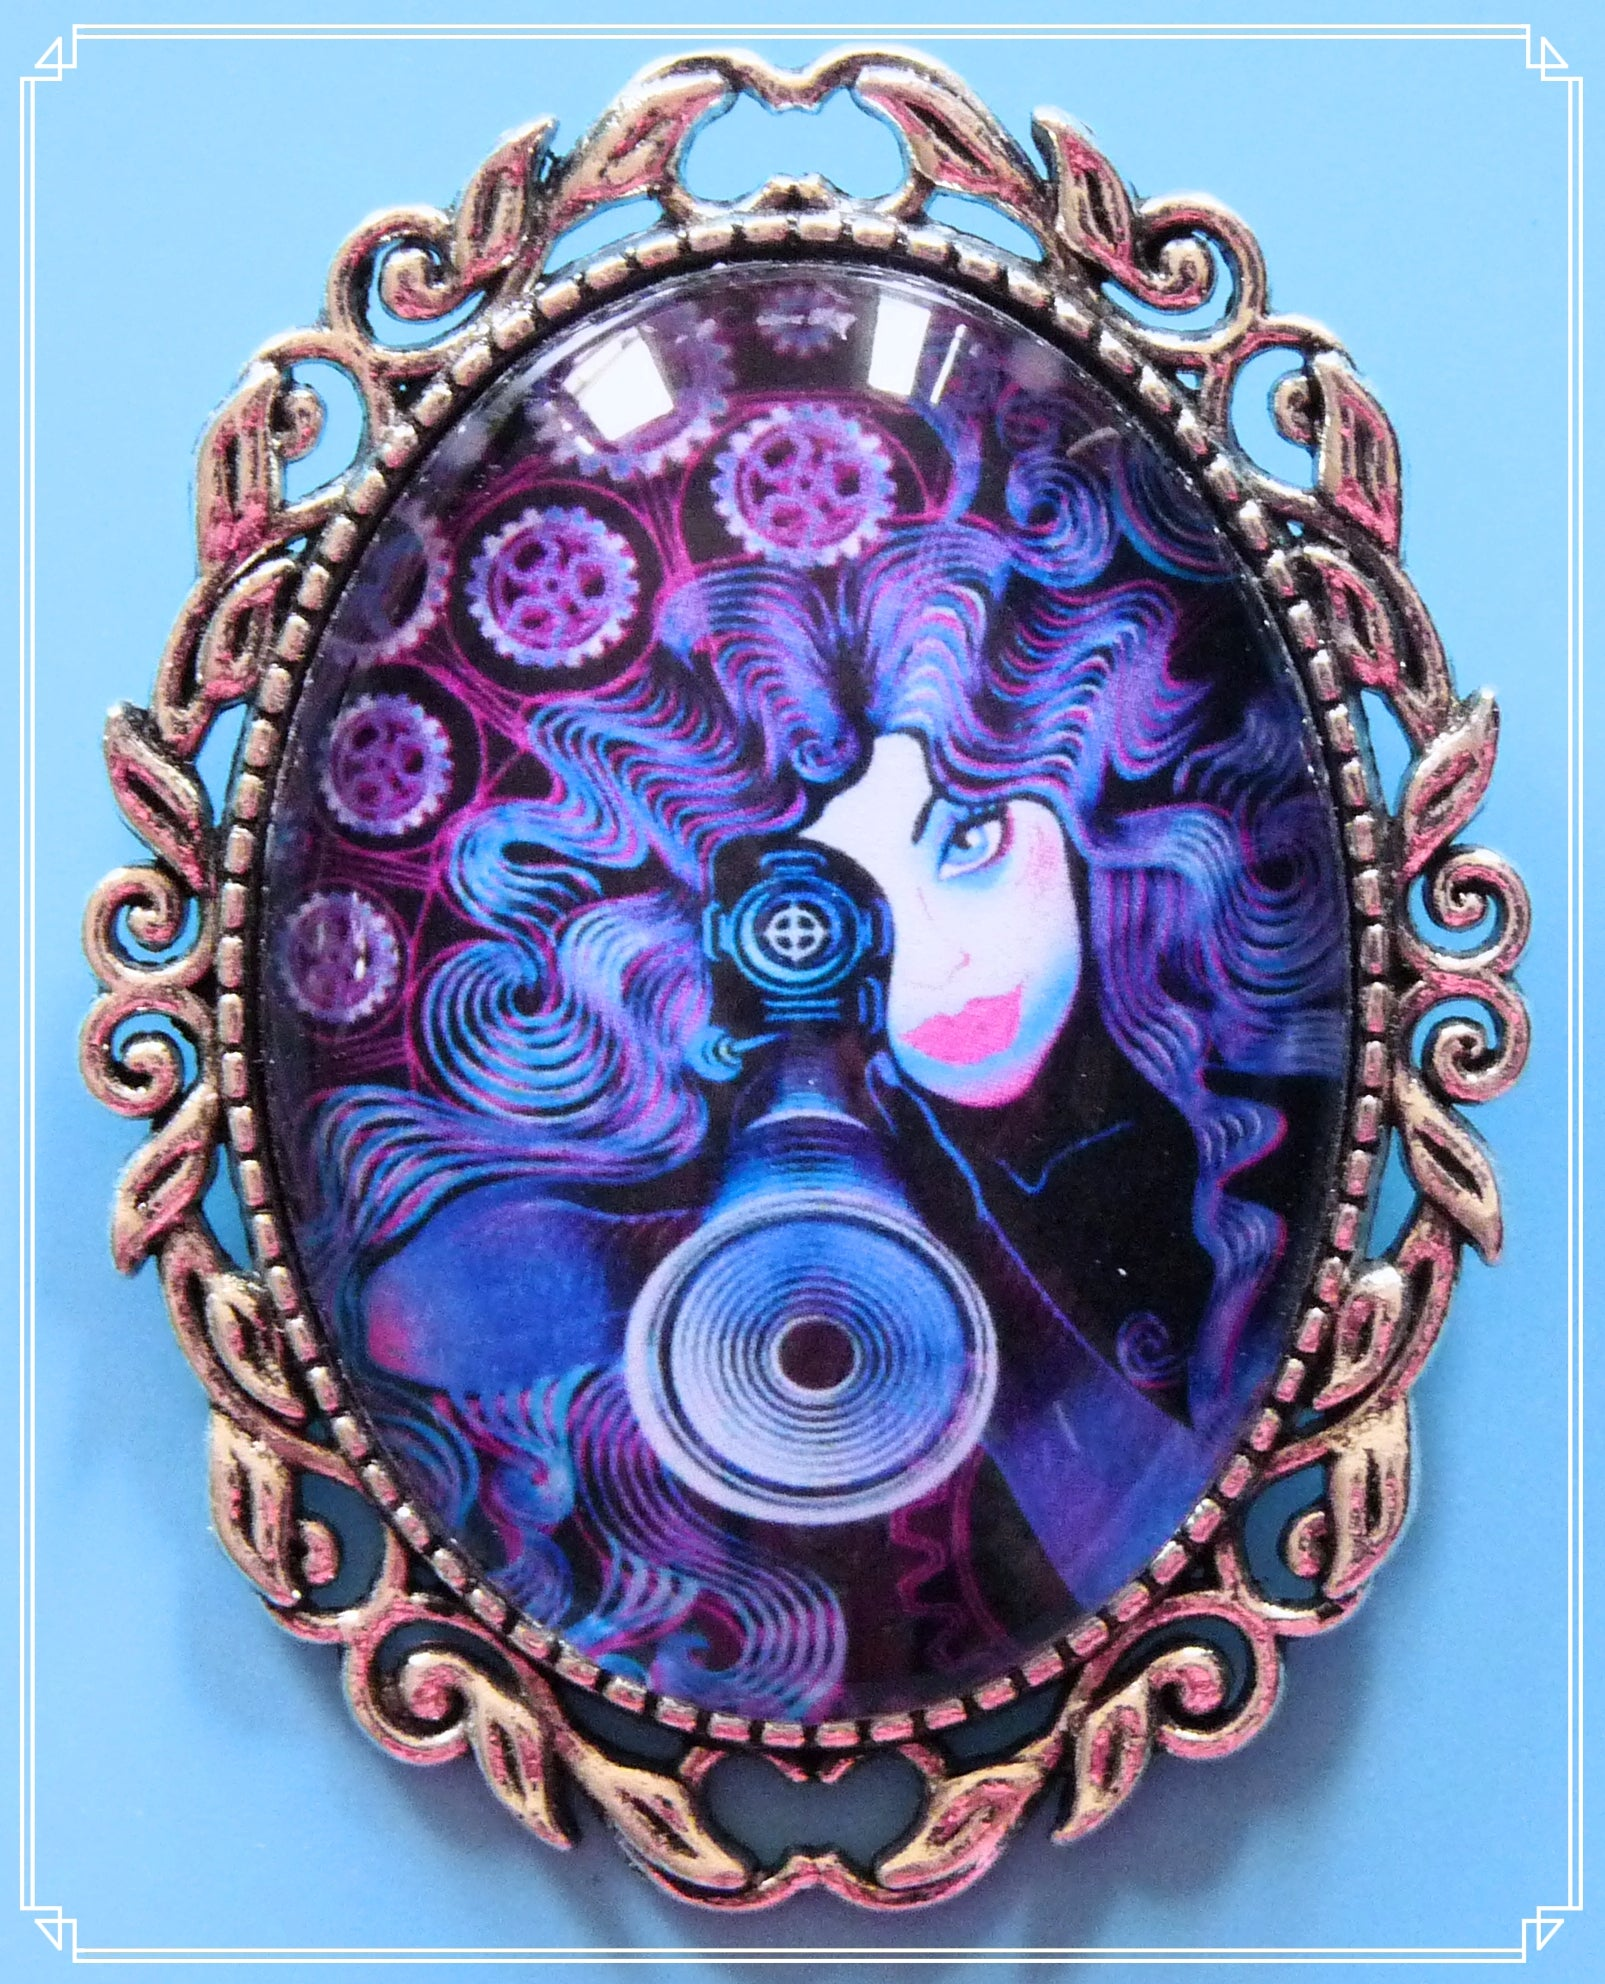 The Violet brooch is part of my Steampunk collection.